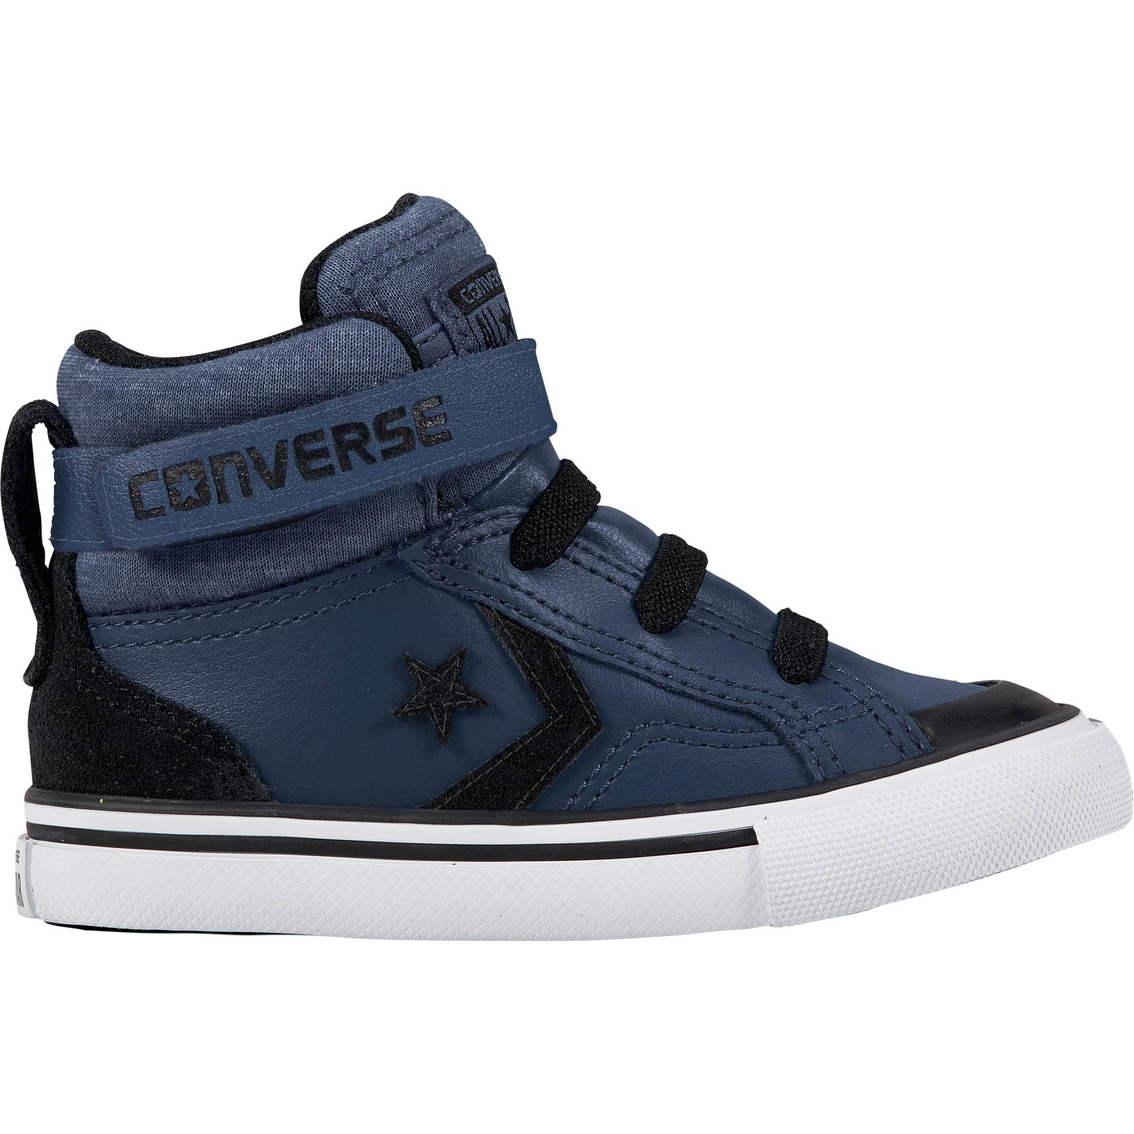 9818479eb6ce Converse Toddler Boys Pro Blaze Strap Hi Top Sneakers